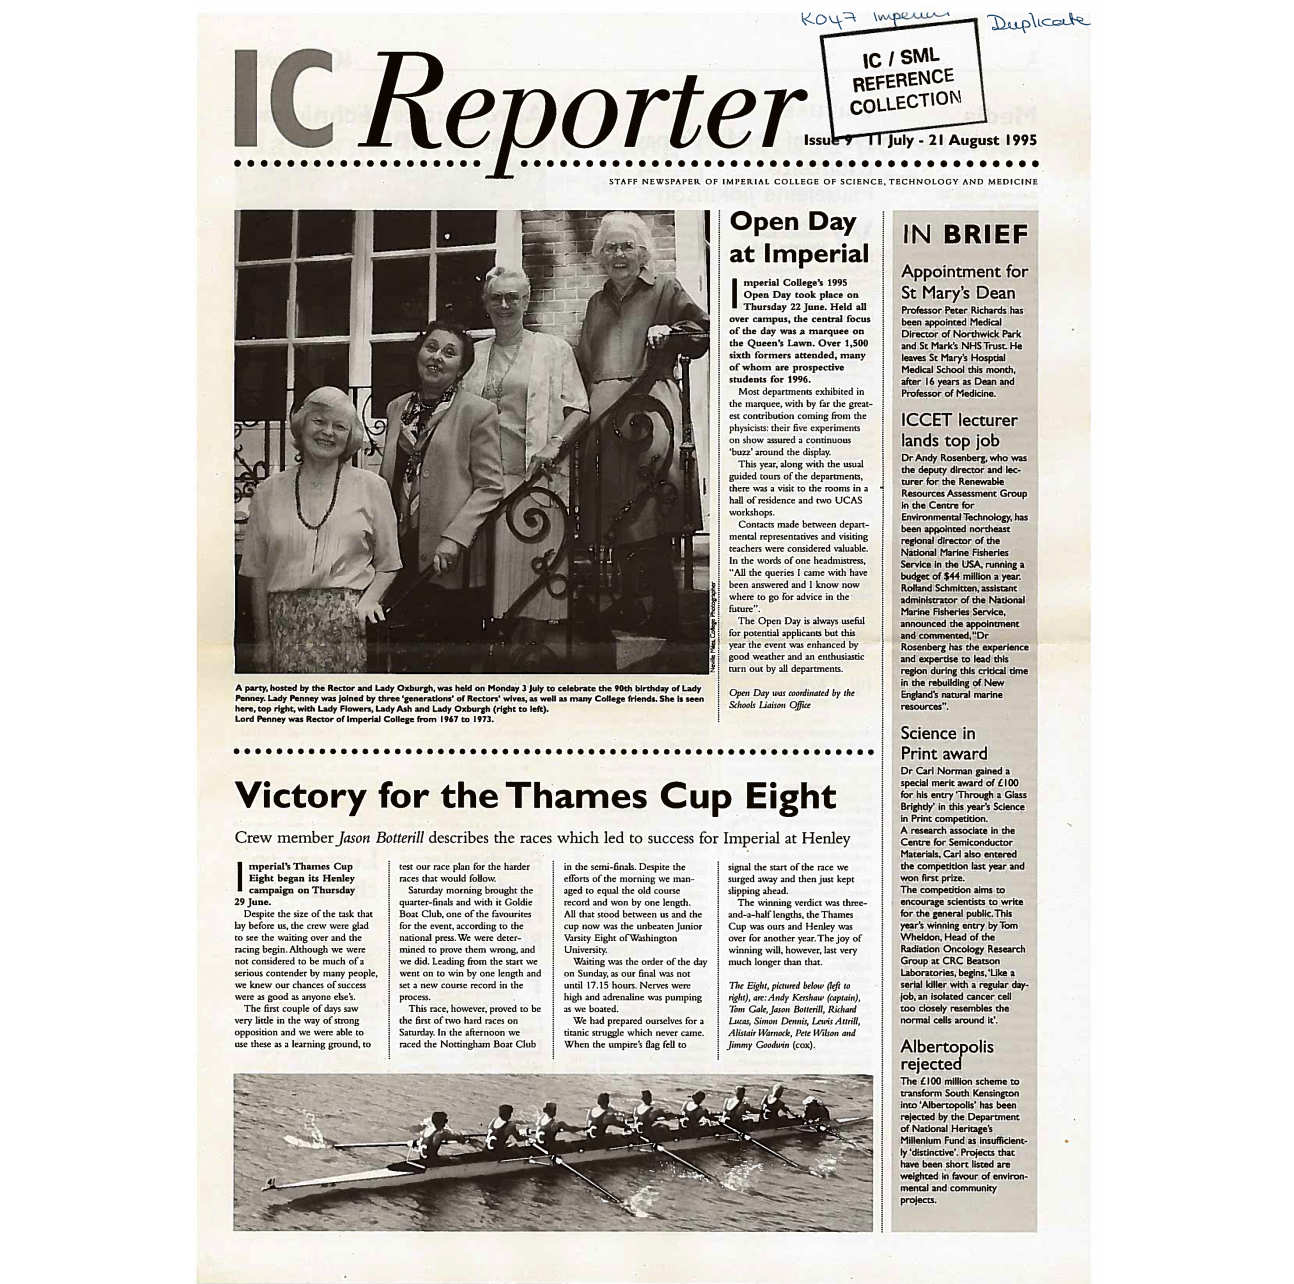 Issue 9, 11 July - 21 August 1995